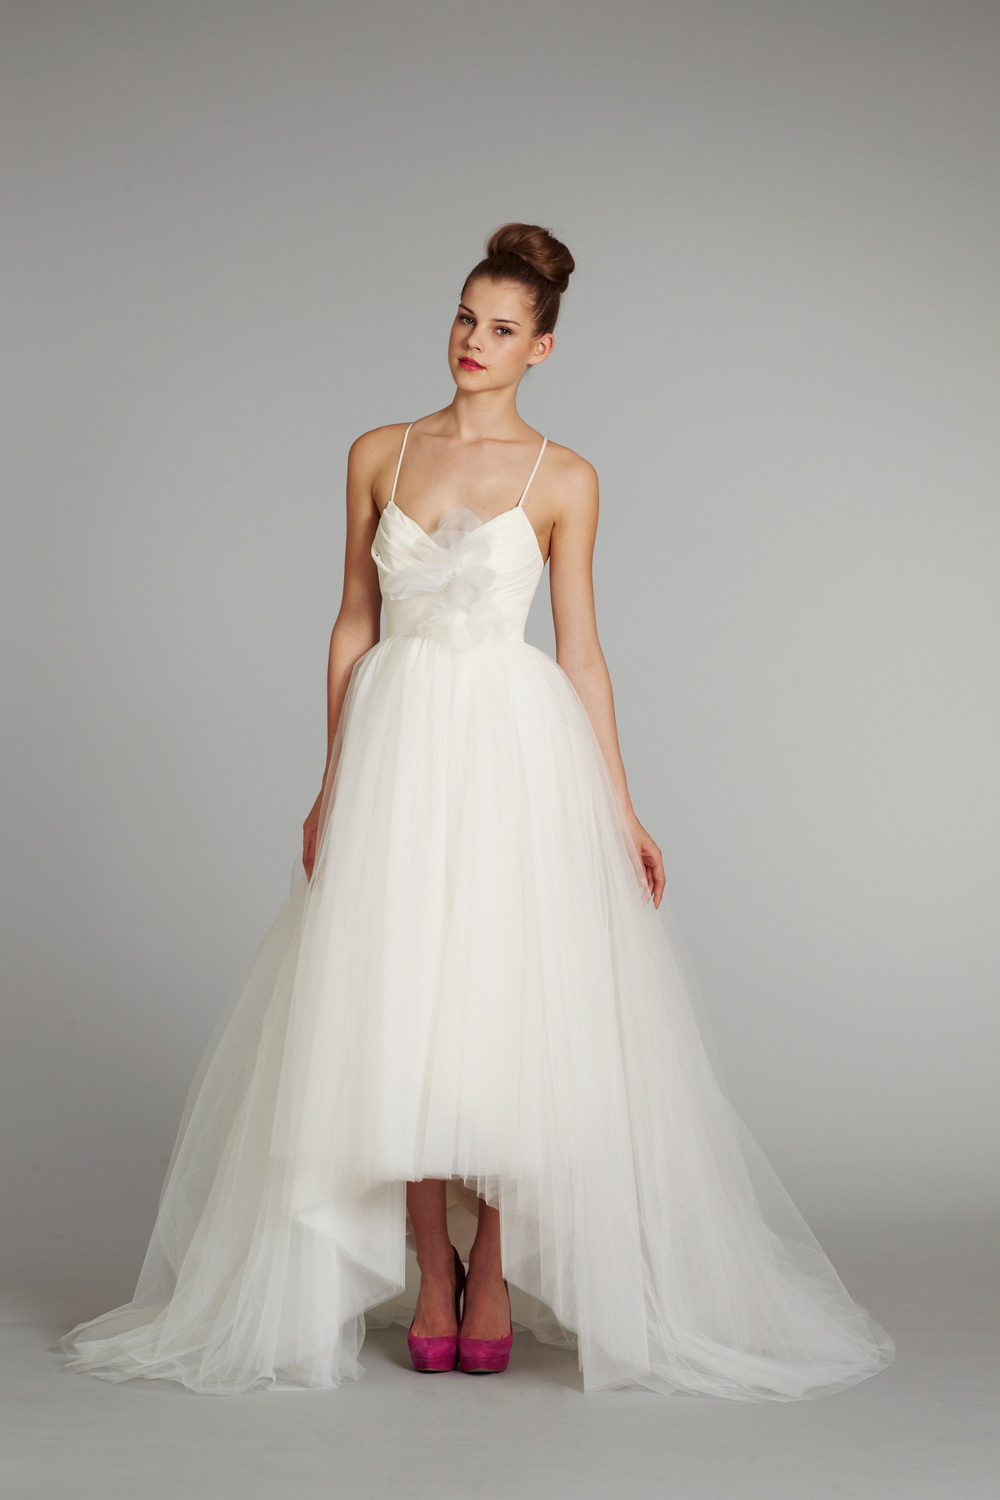 Bridal-gown-wedding-dress-jlm-hayley-paige-blush-fall-2012-lilac-white-front.full